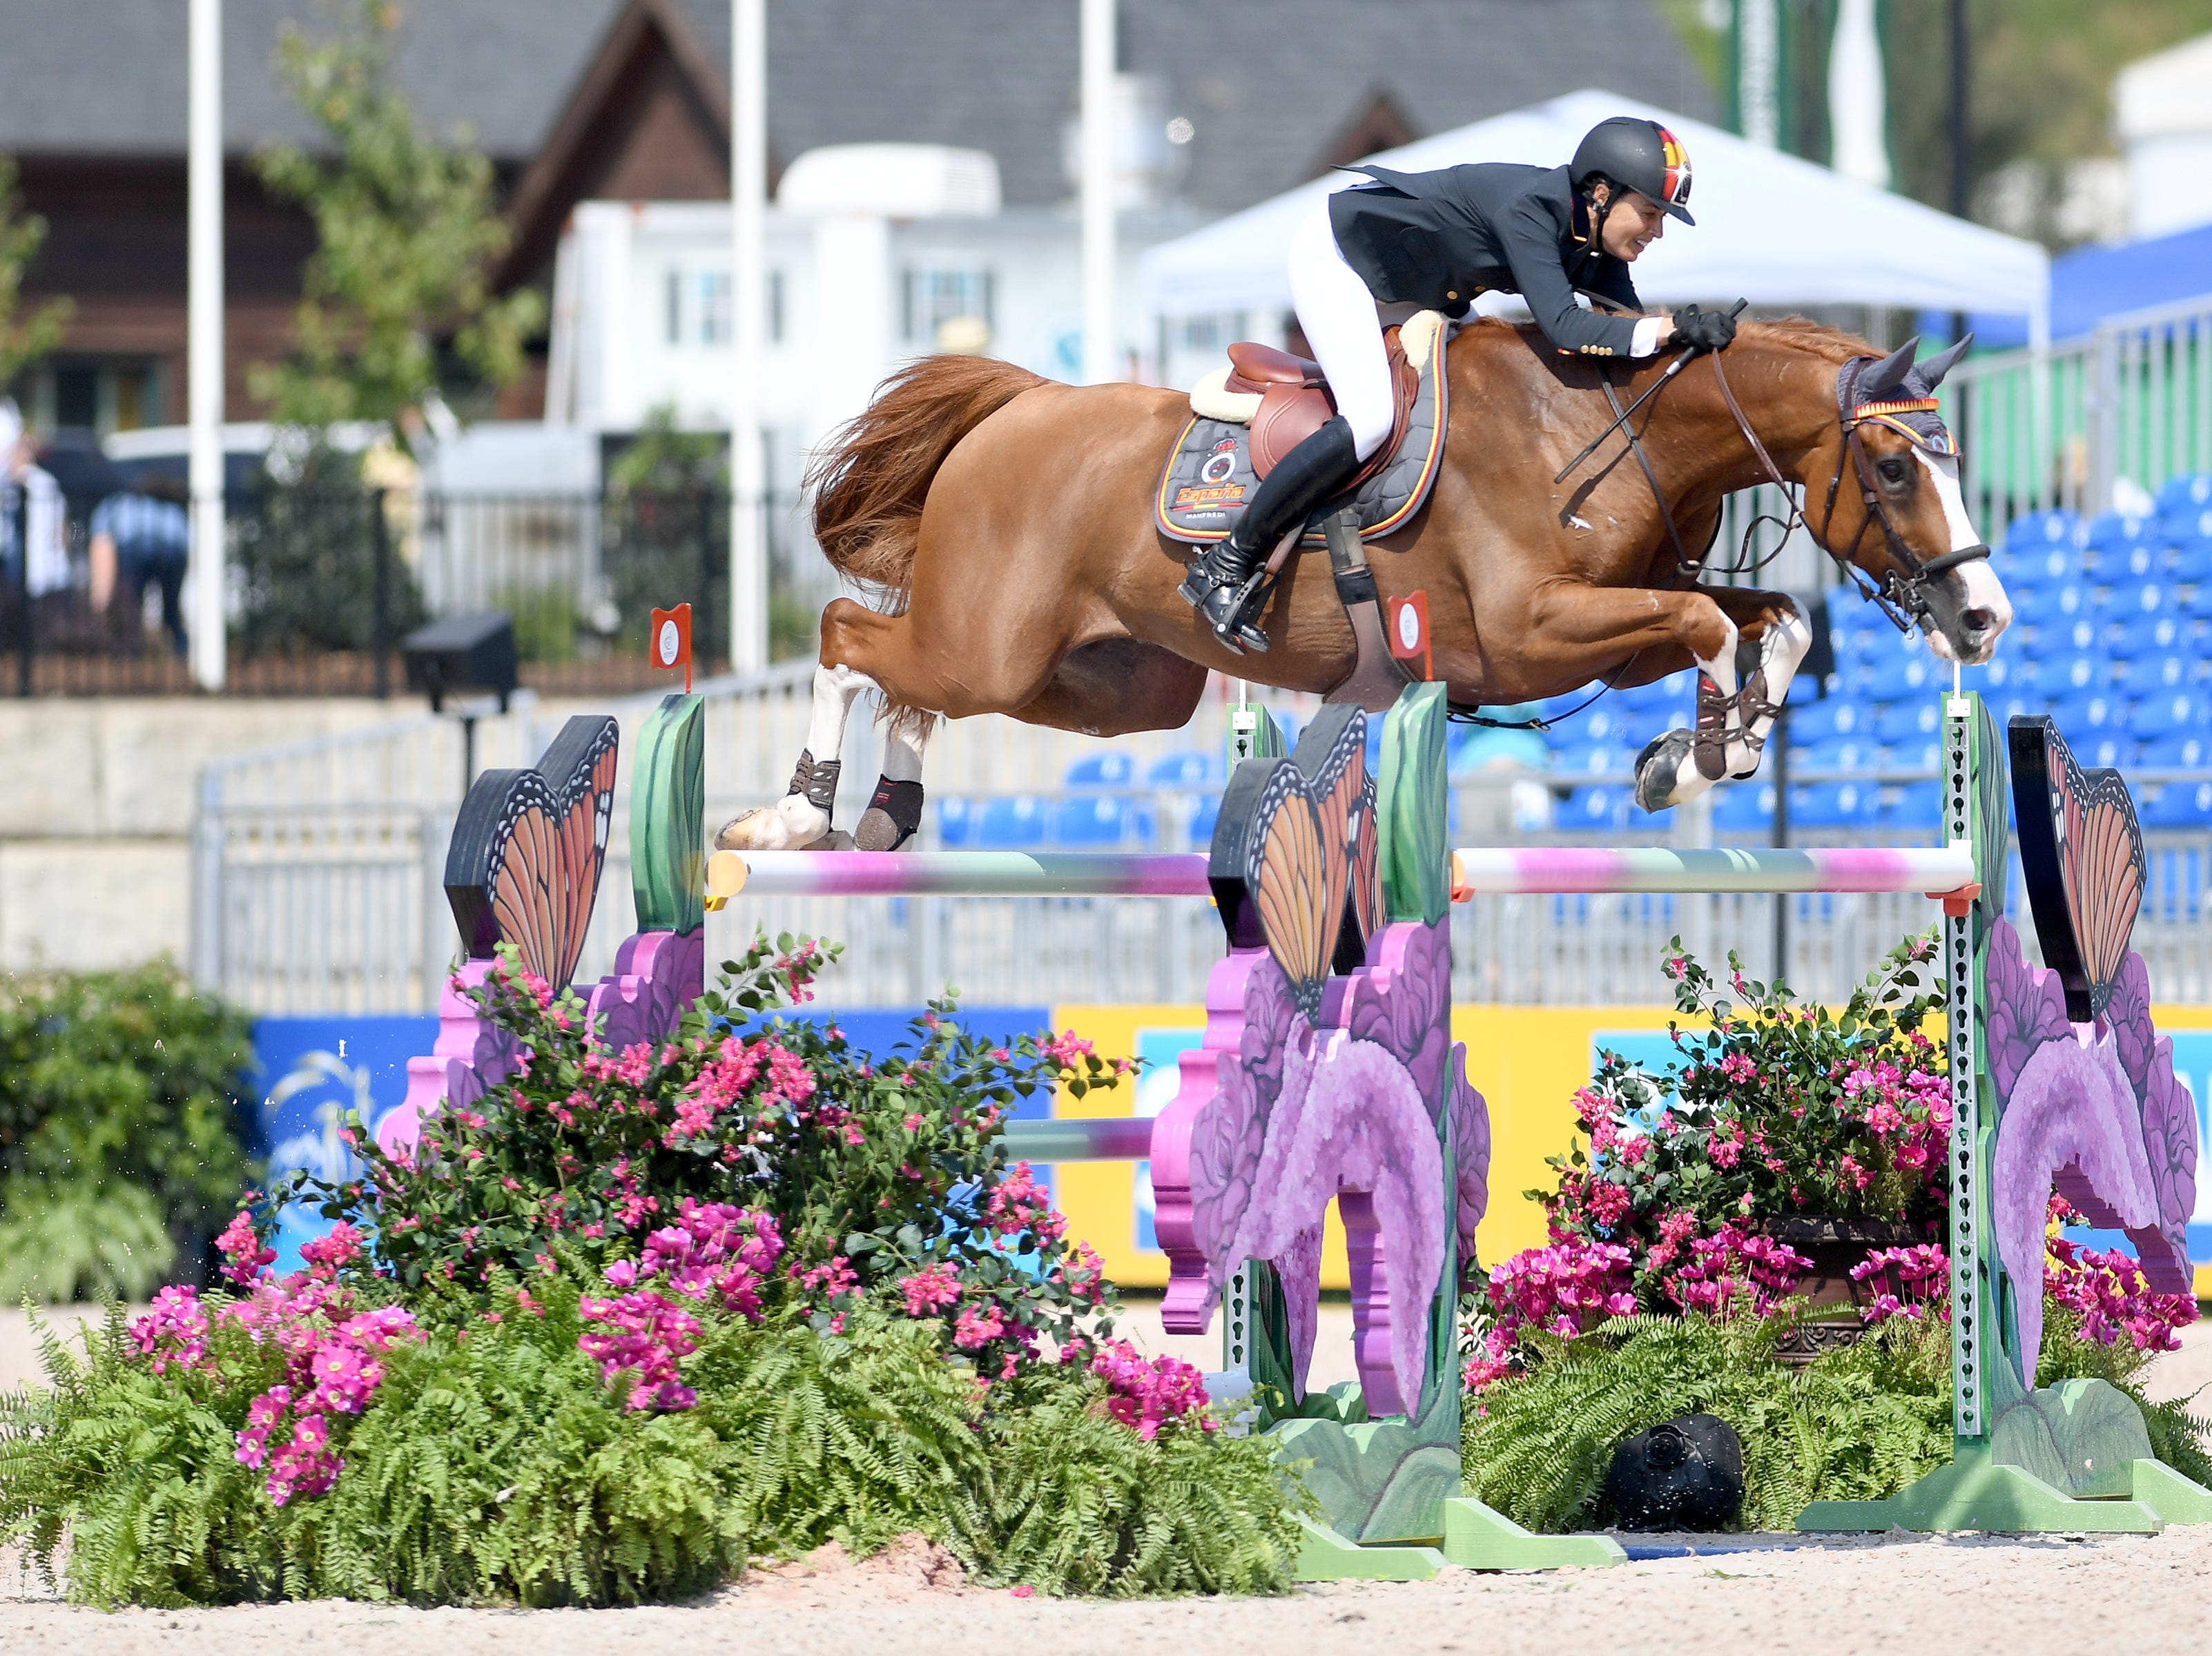 Spain's Pilar Lucrecia Cordon, on Grand Cru van de Rozenberg, competes in the team jumping competition of the FEI World Equestrian Games at the Tryon International Equestrian Center on Sept. 20, 2018.